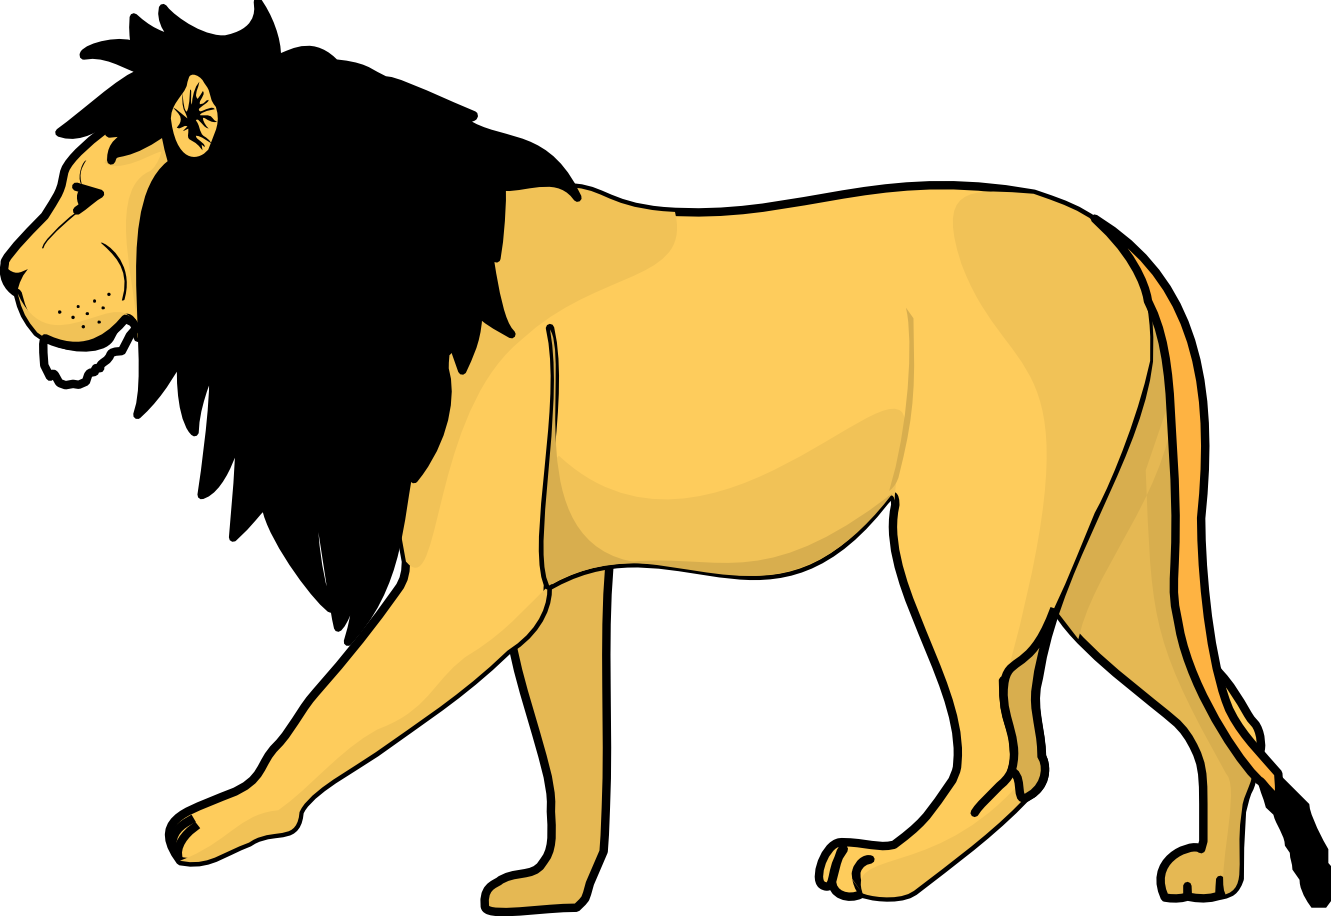 Lion clipart Lion animals clip art black and white